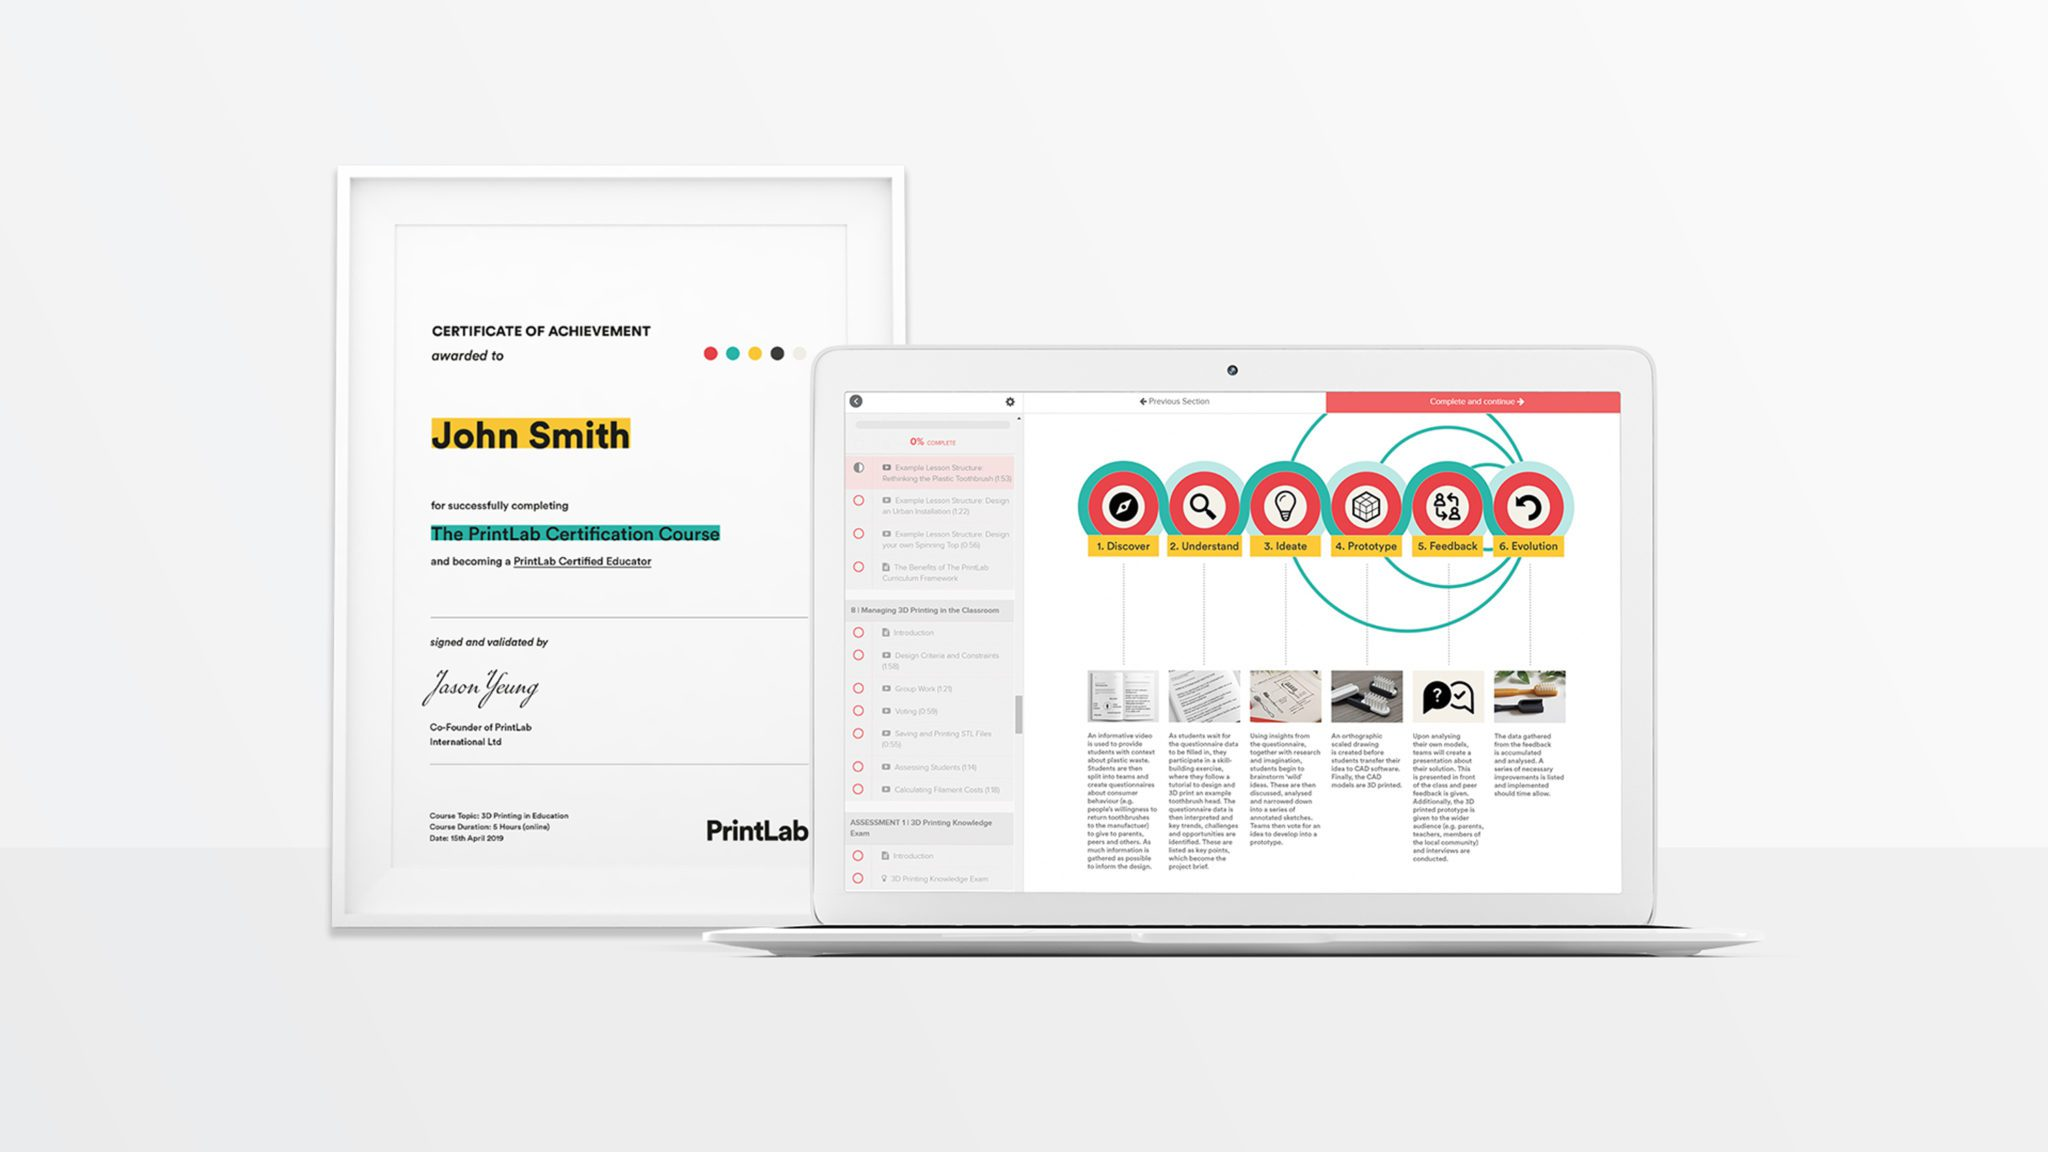 The PrintLab Certification Course